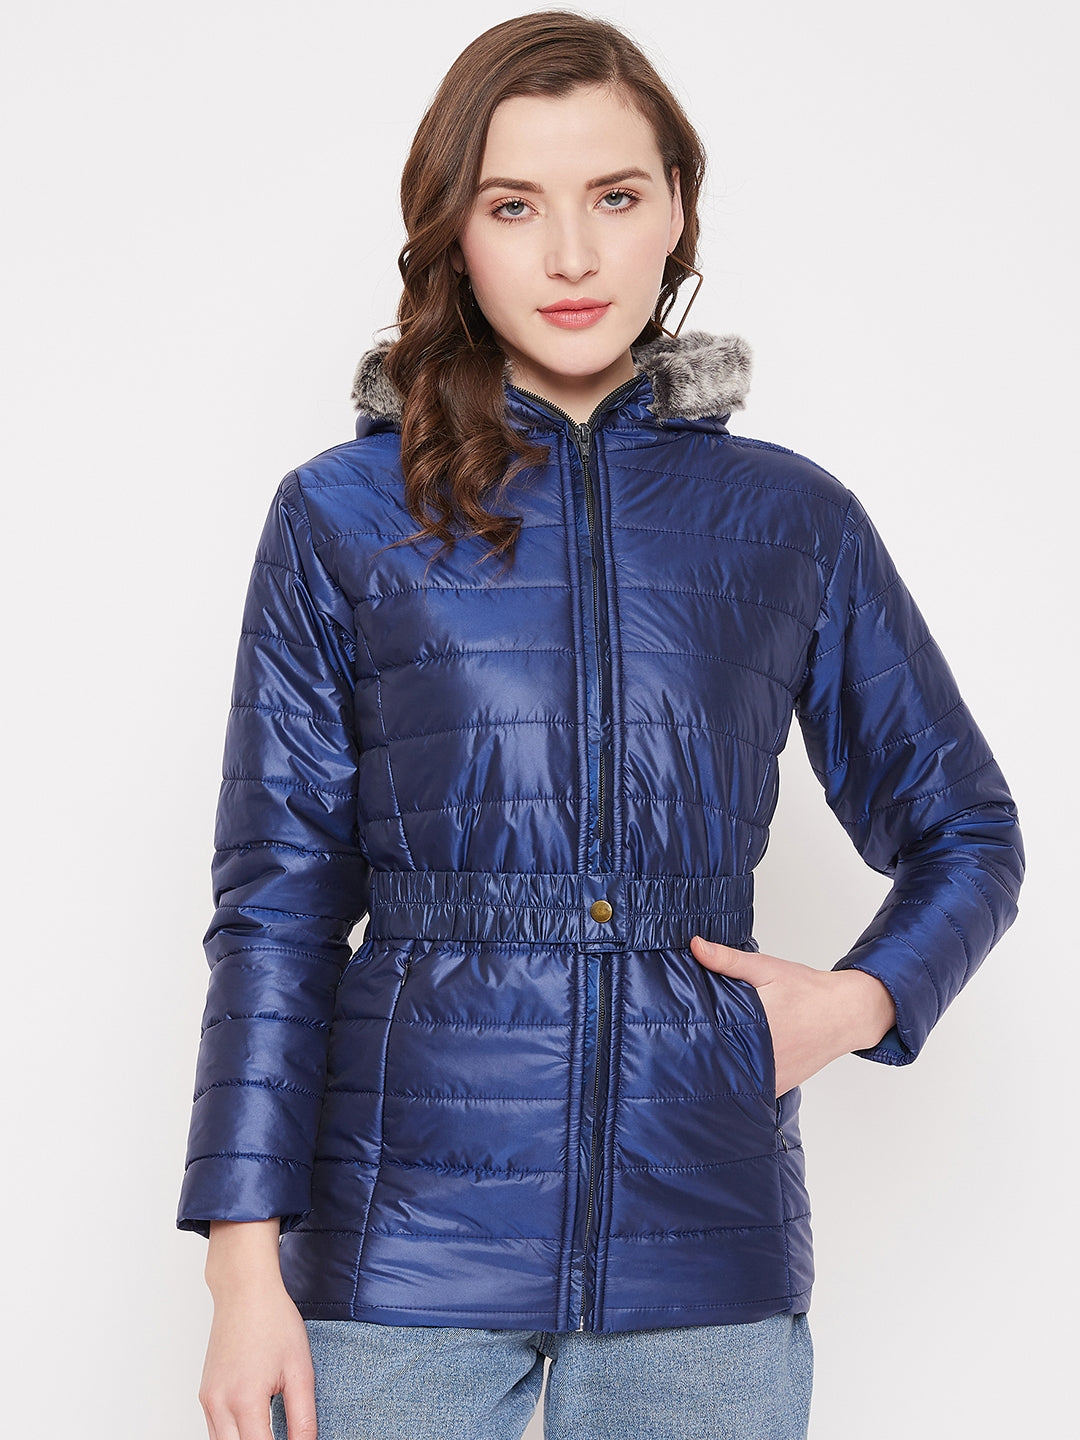 JUMP USA Womens Blue Hood Quilted Jacket